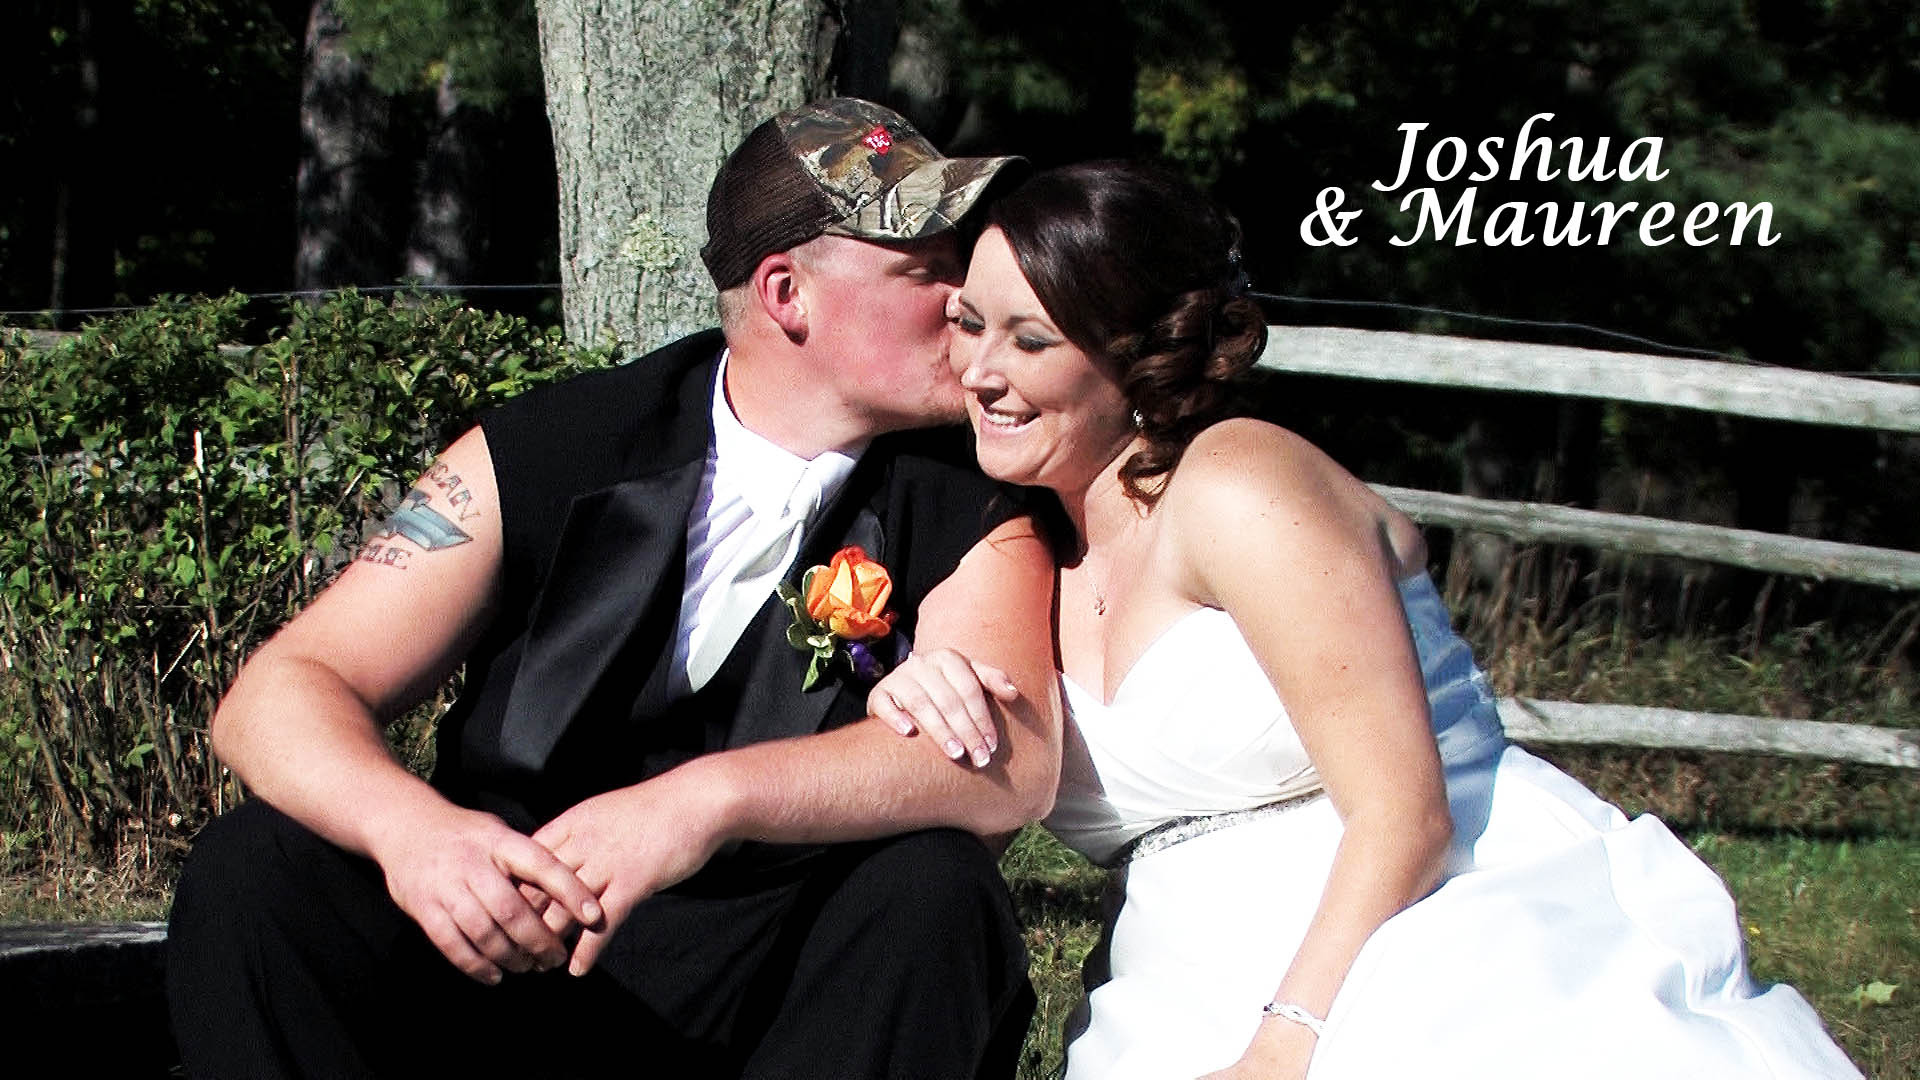 Josh & Maureen – Buffalo Wedding Videography